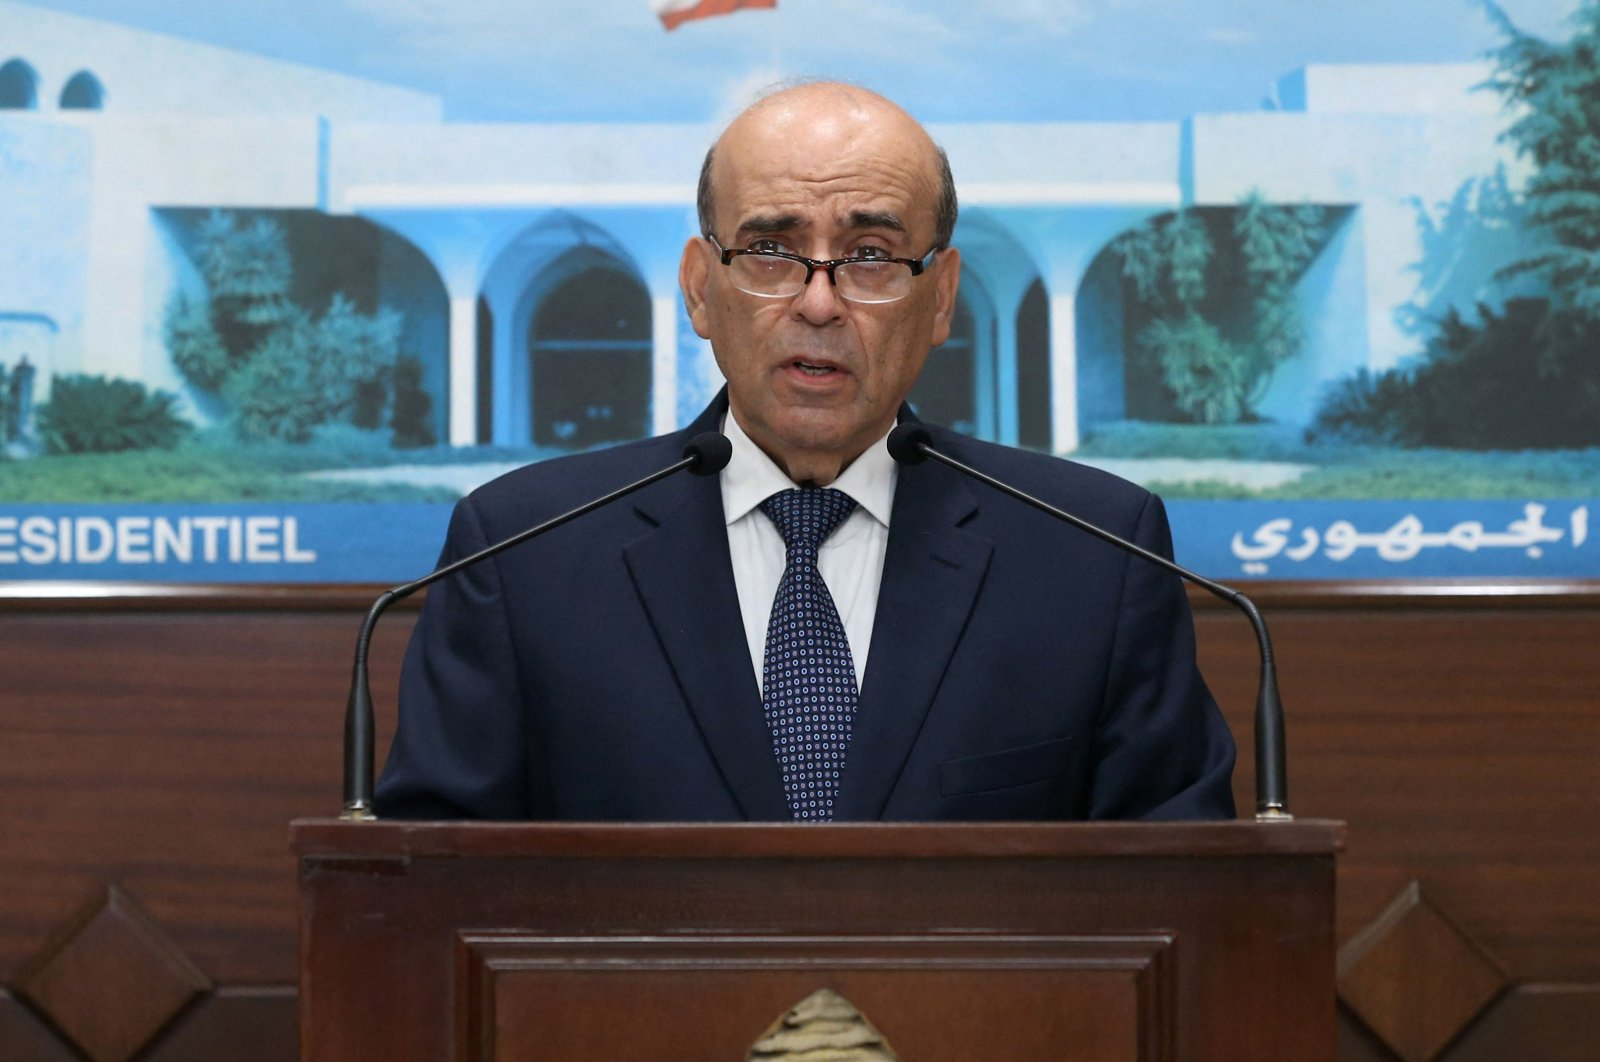 A handout picture provided by the Lebanese photo agency Dalati and Nohra shows Lebanese Foreign Minister Charbel Wehbe speaking after presenting his resignation to President Michel Aoun at the Baabda Presidential Palace, east of the Lebanese capital Beirut, May 19, 2021.(Dalati and Nohra via AFP)